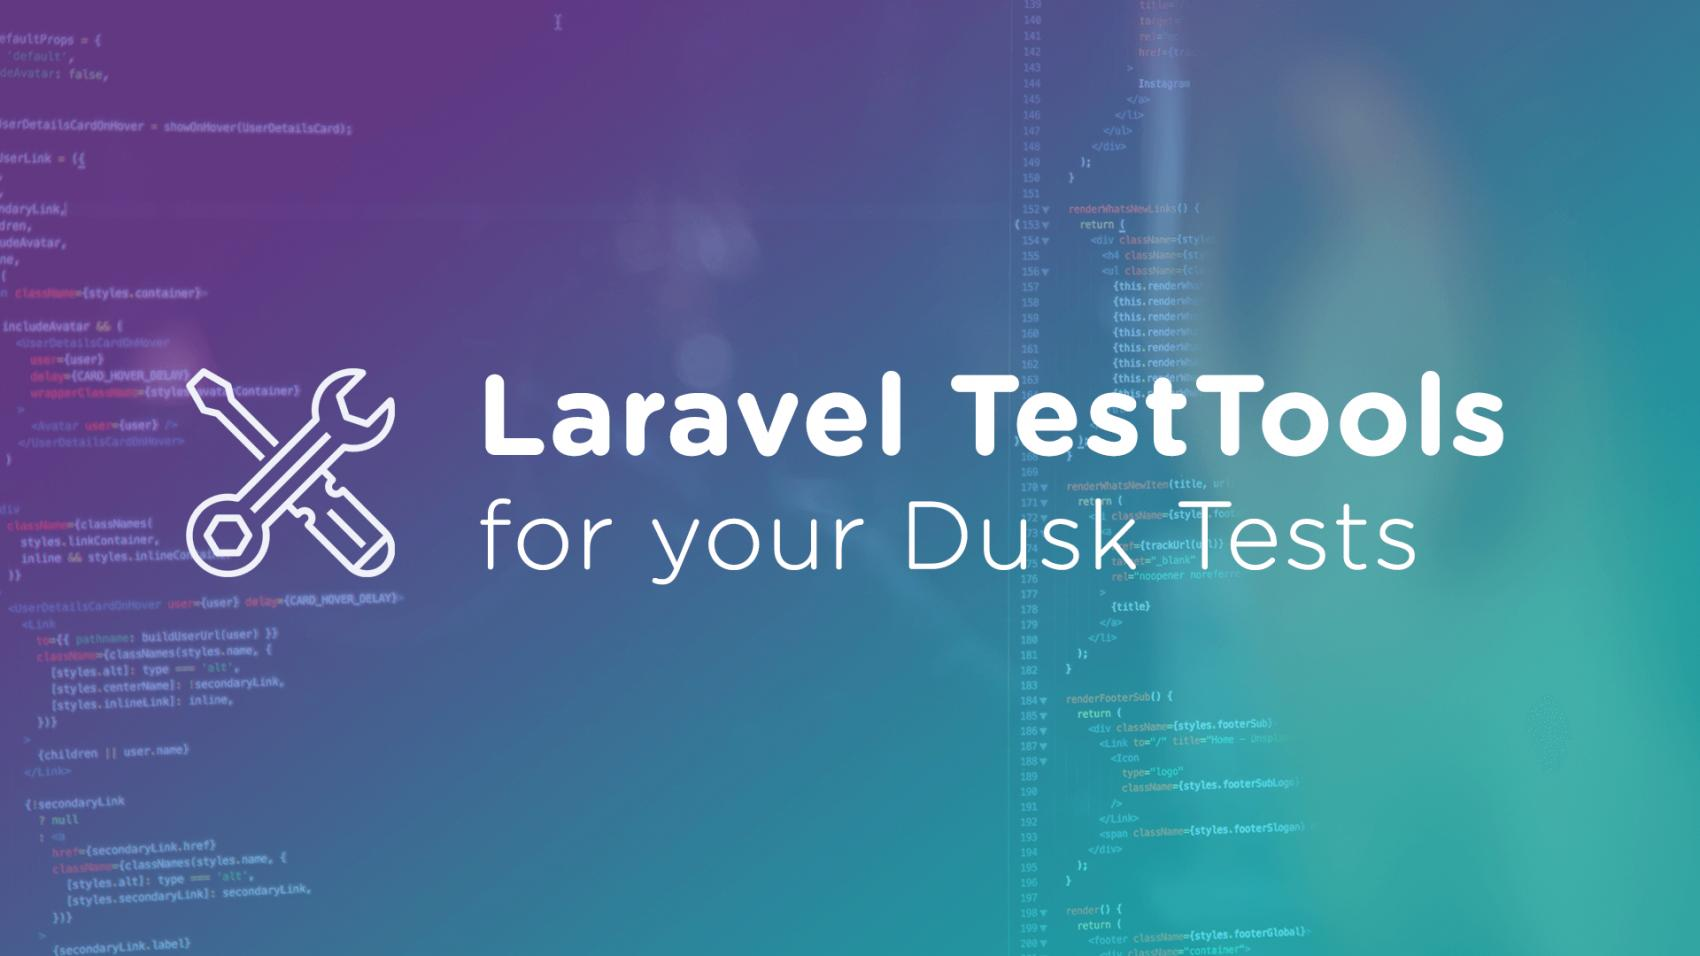 Laravel TestTools for your Dusk Tests